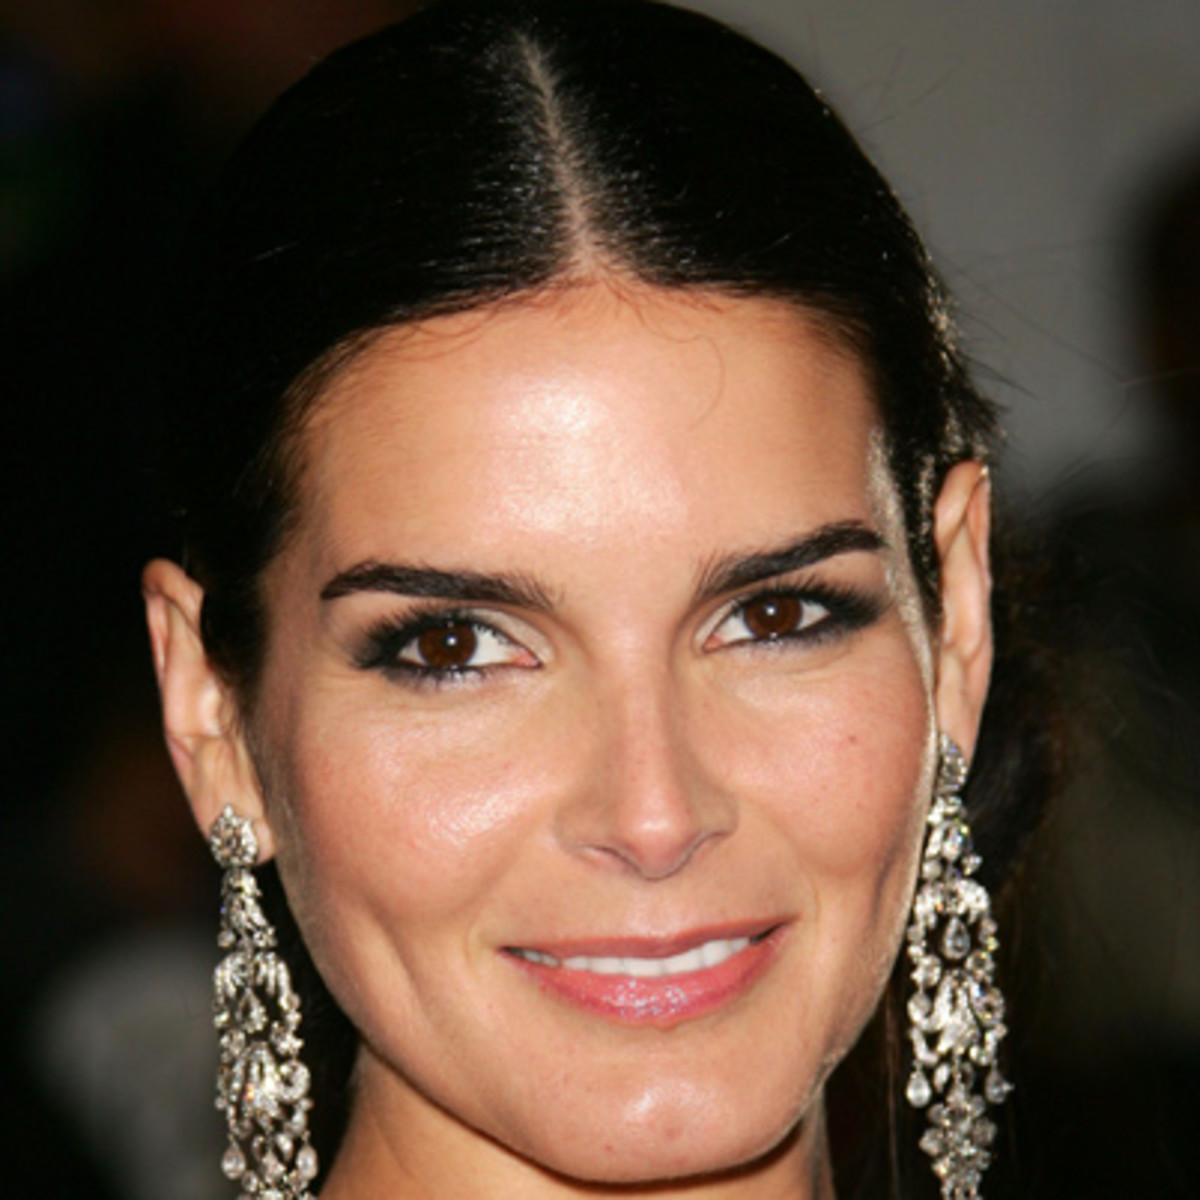 braless Angie Harmon born August 10, 1972 (age 46) naked photo 2017